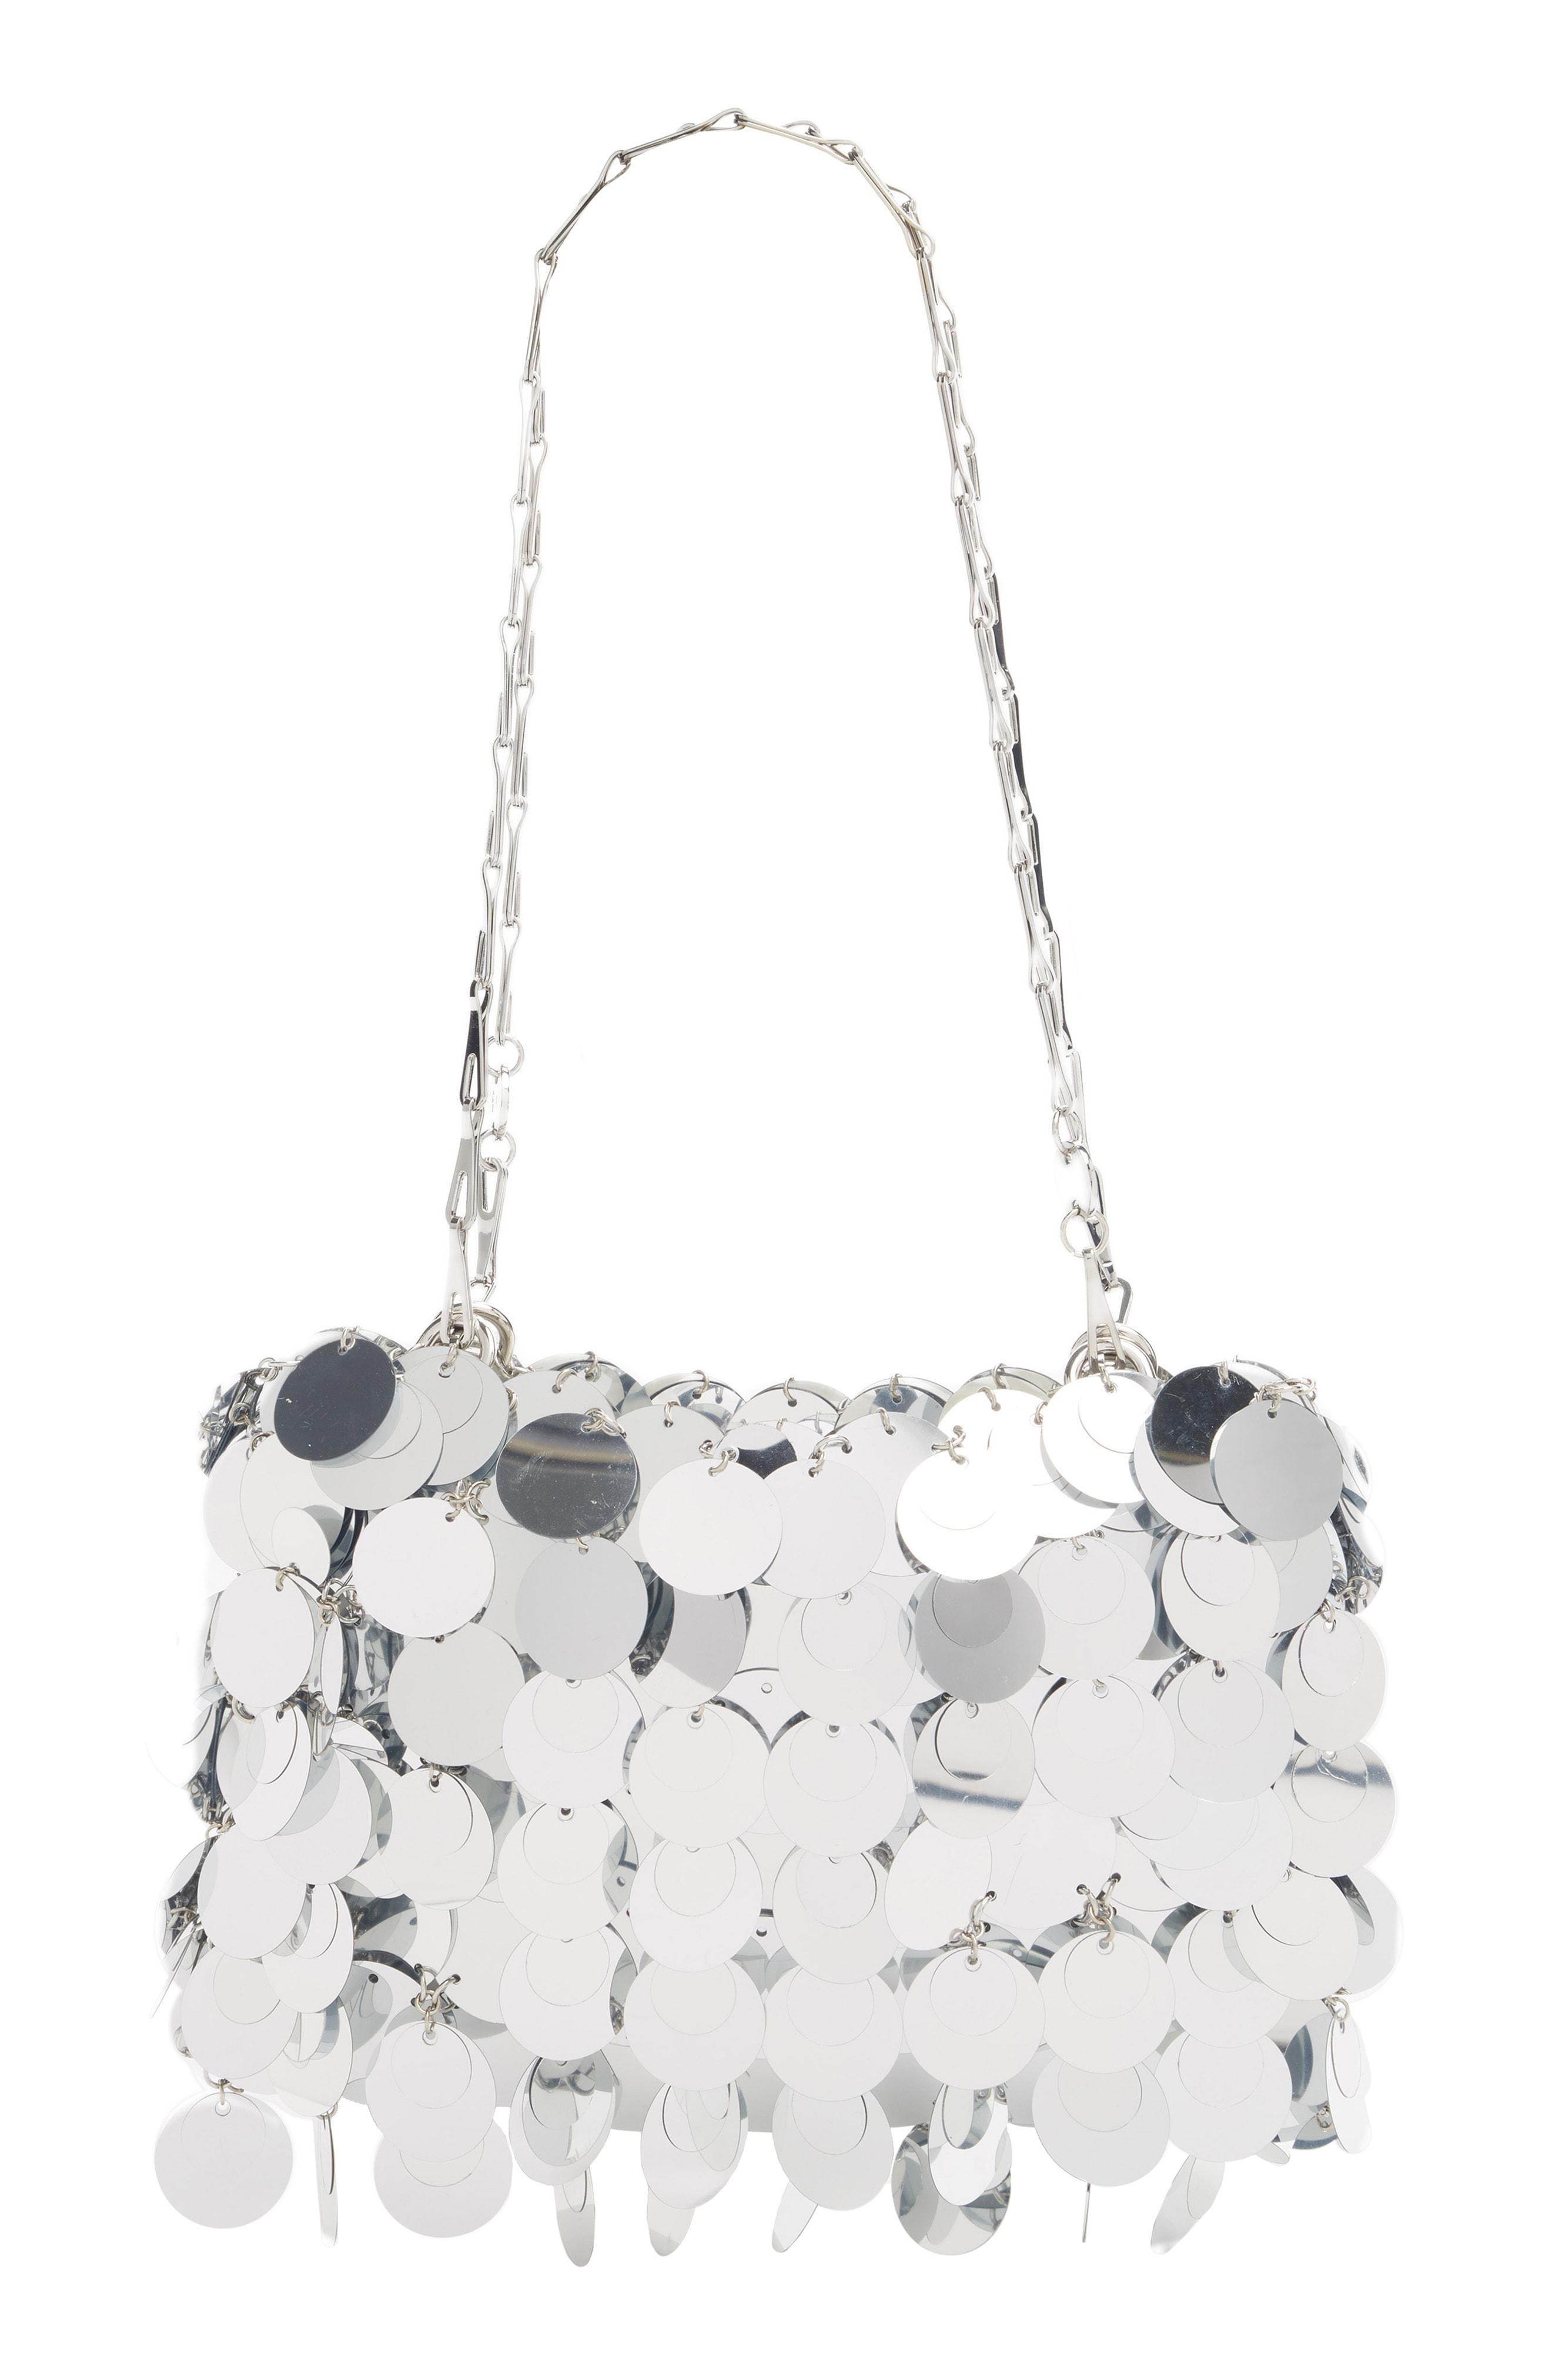 00953763df00 Lyst - Paco Rabanne Sparkle 1969 Iconic Shoulder Bag - Metallic in ...